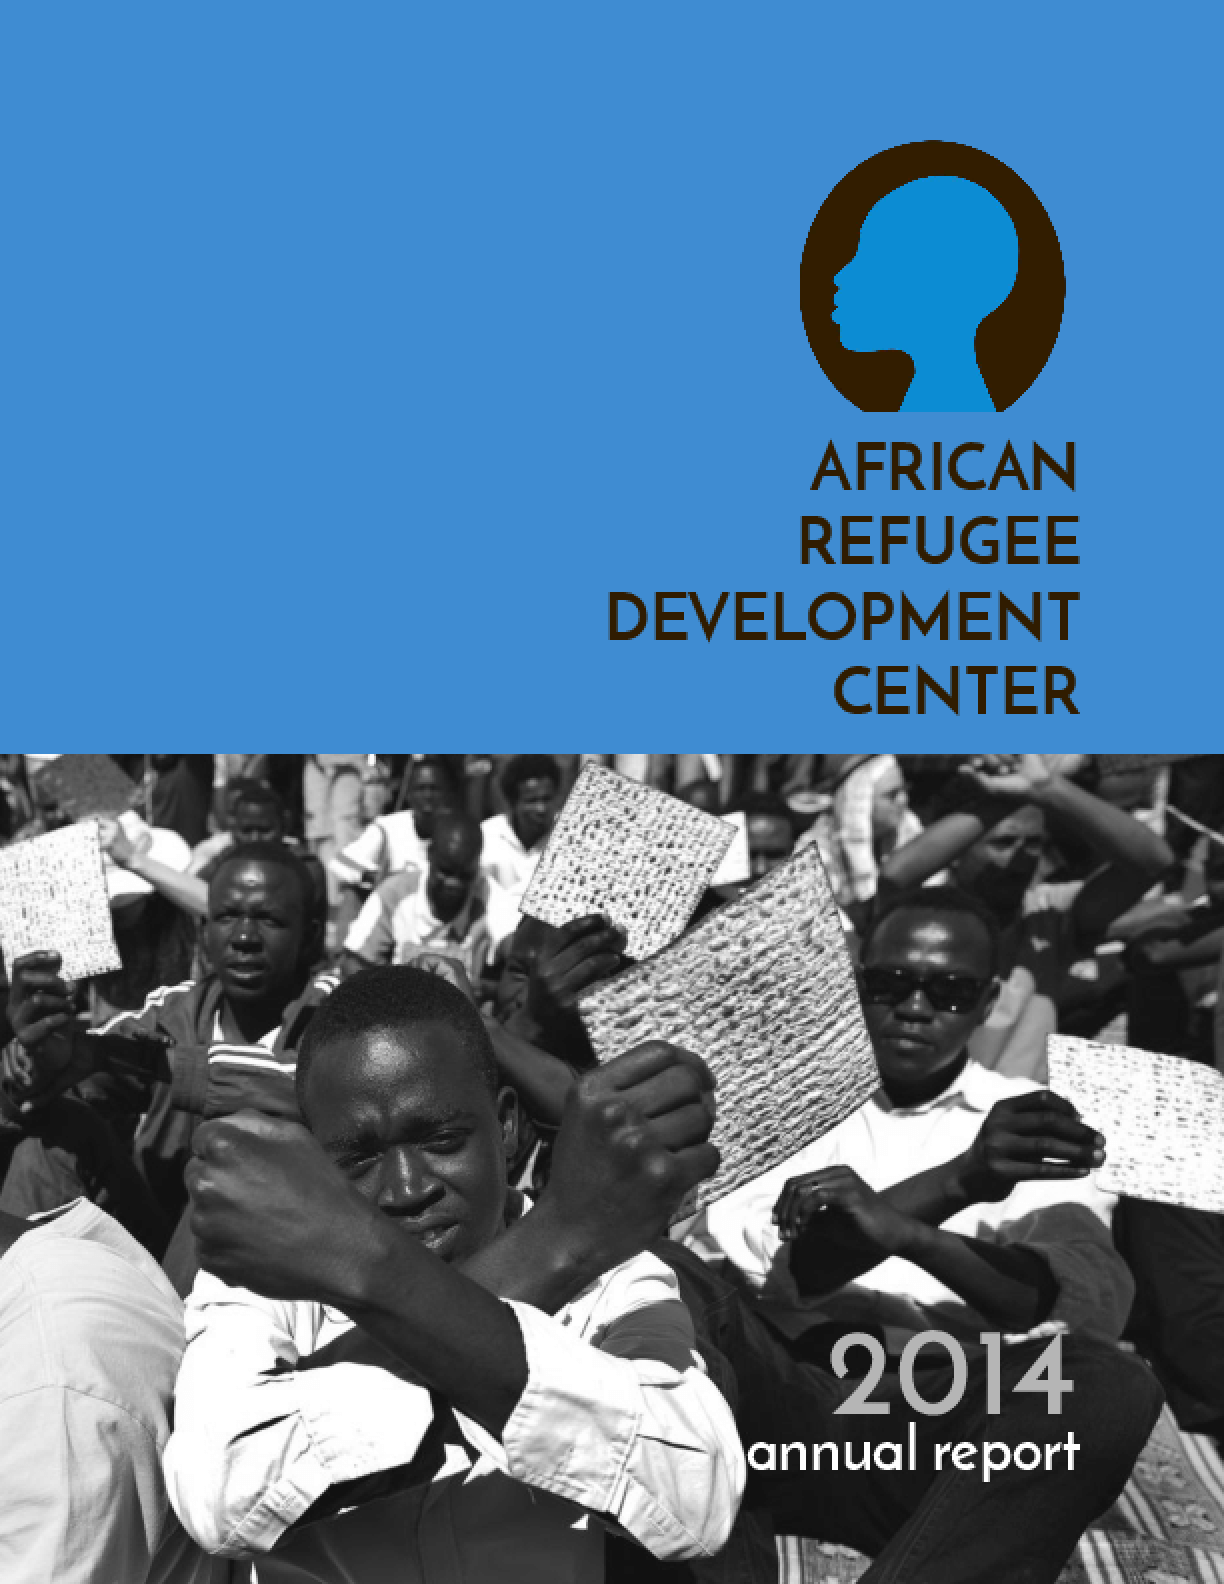 African Refugee Development Center: 2014 Annual Report